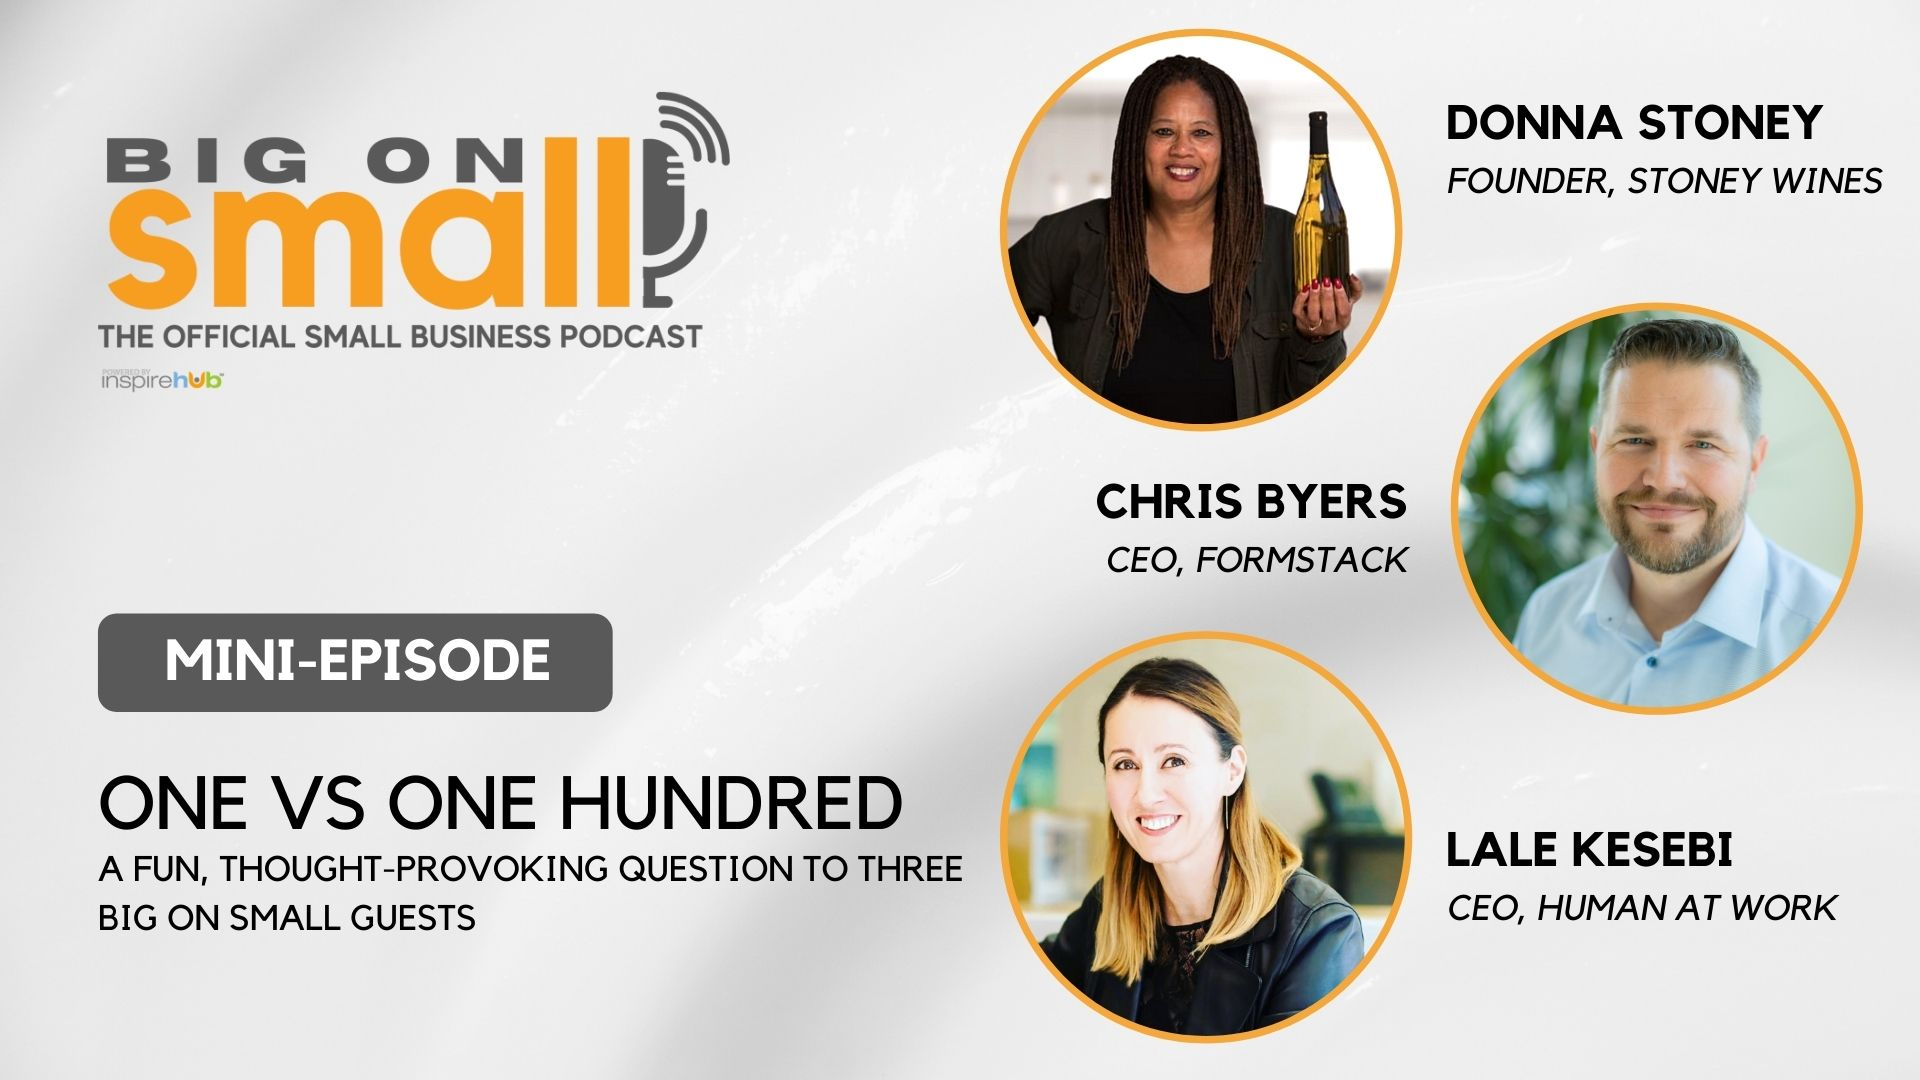 Big On Small: The Official Podcast for Small Business asks 3 of our past guests one very important question. How would YOU answer it?